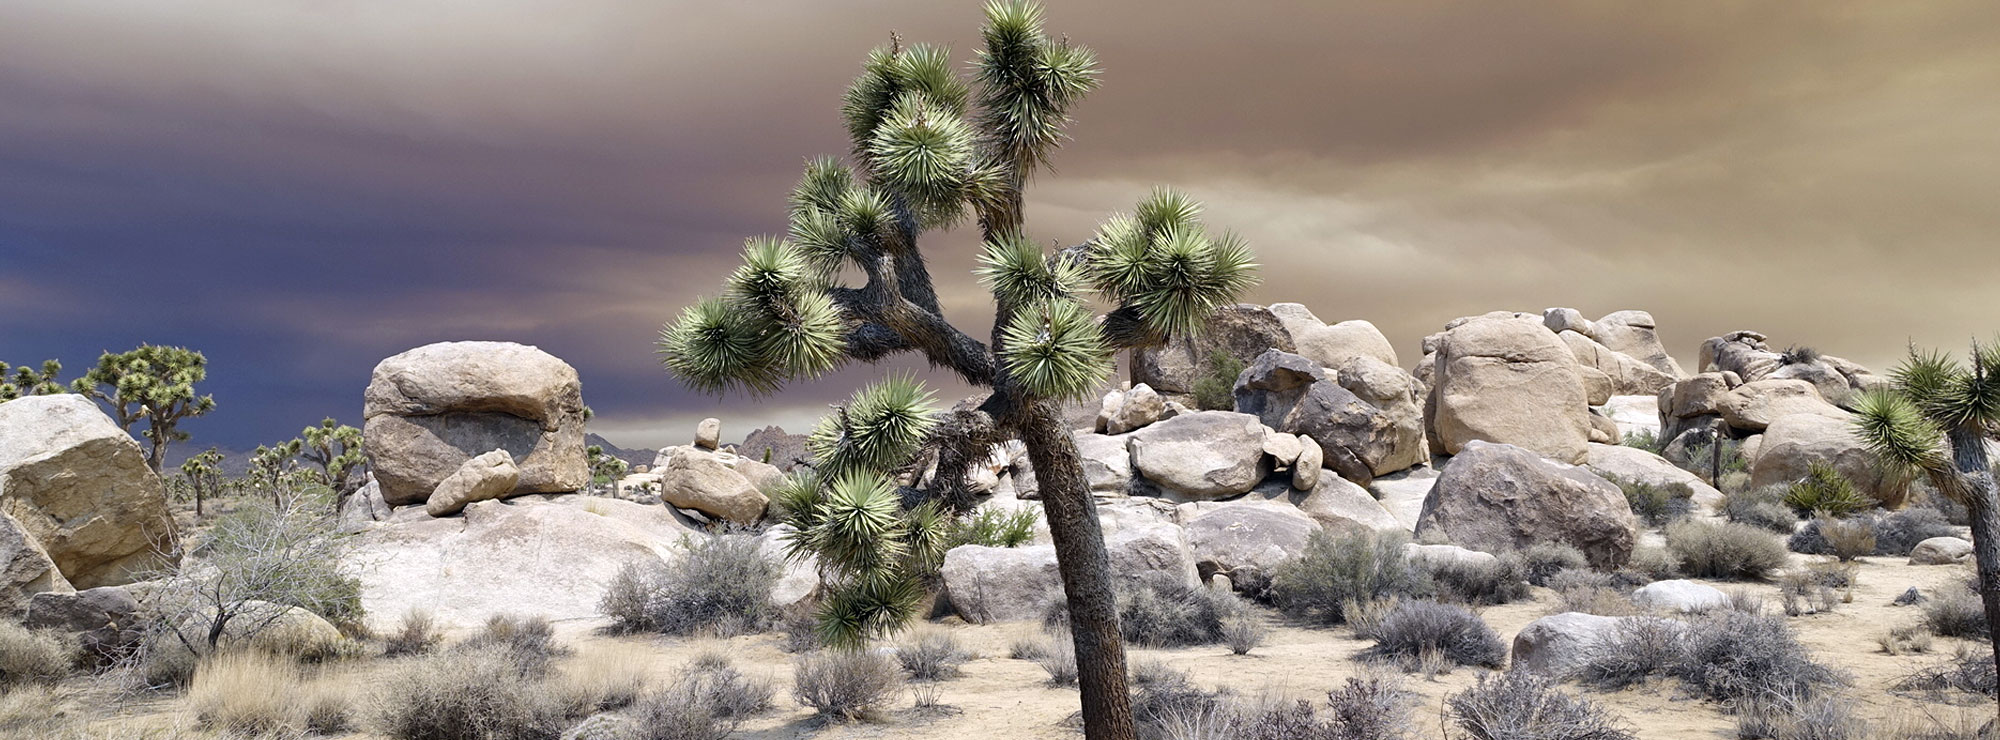 Joshua tree sustainability